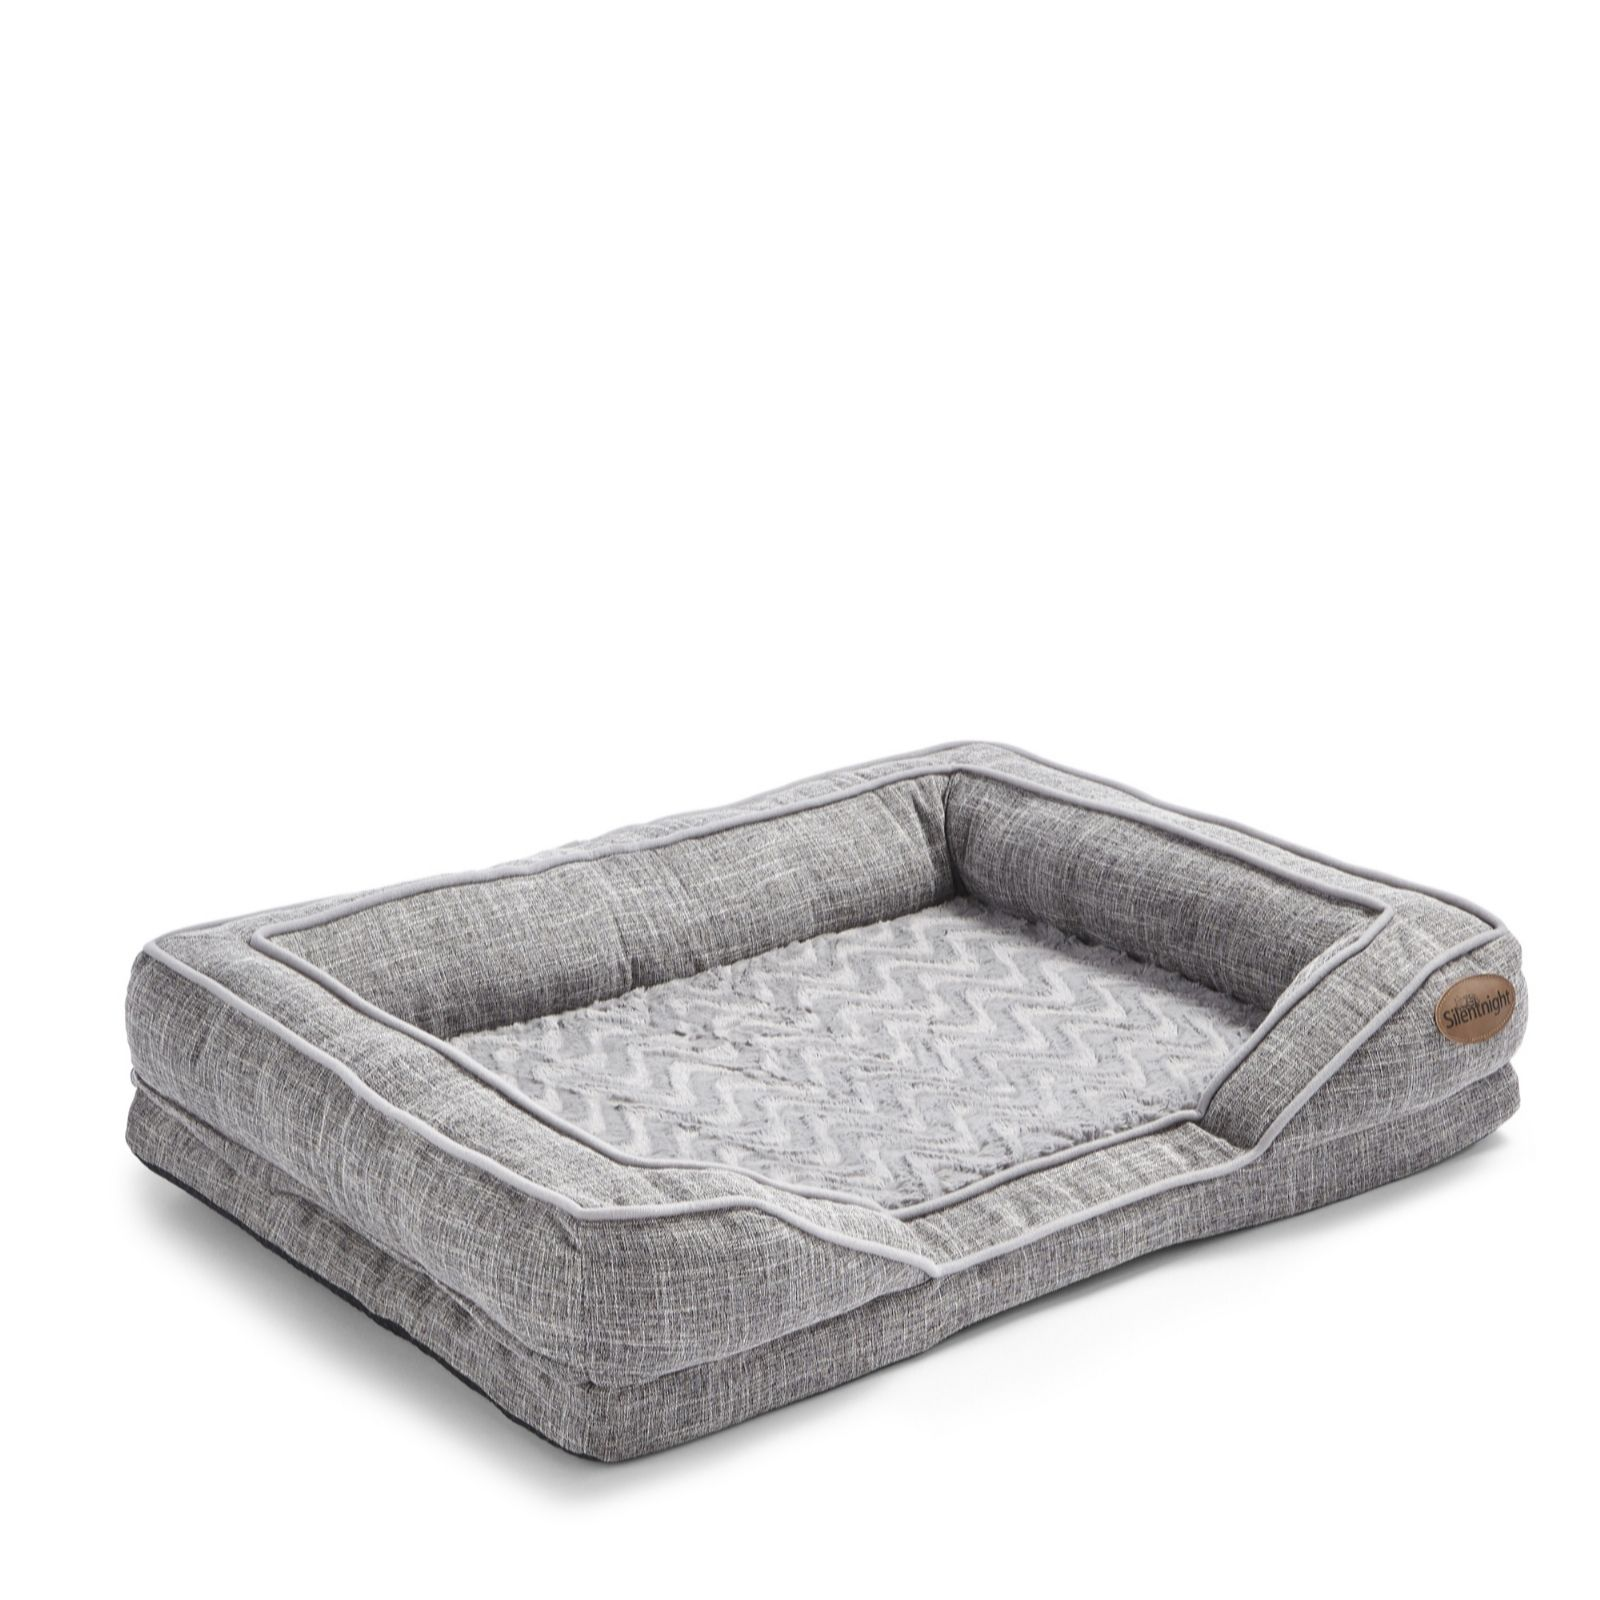 Picture of: Silentnight Orthopaedic Pet Bed Qvc Uk